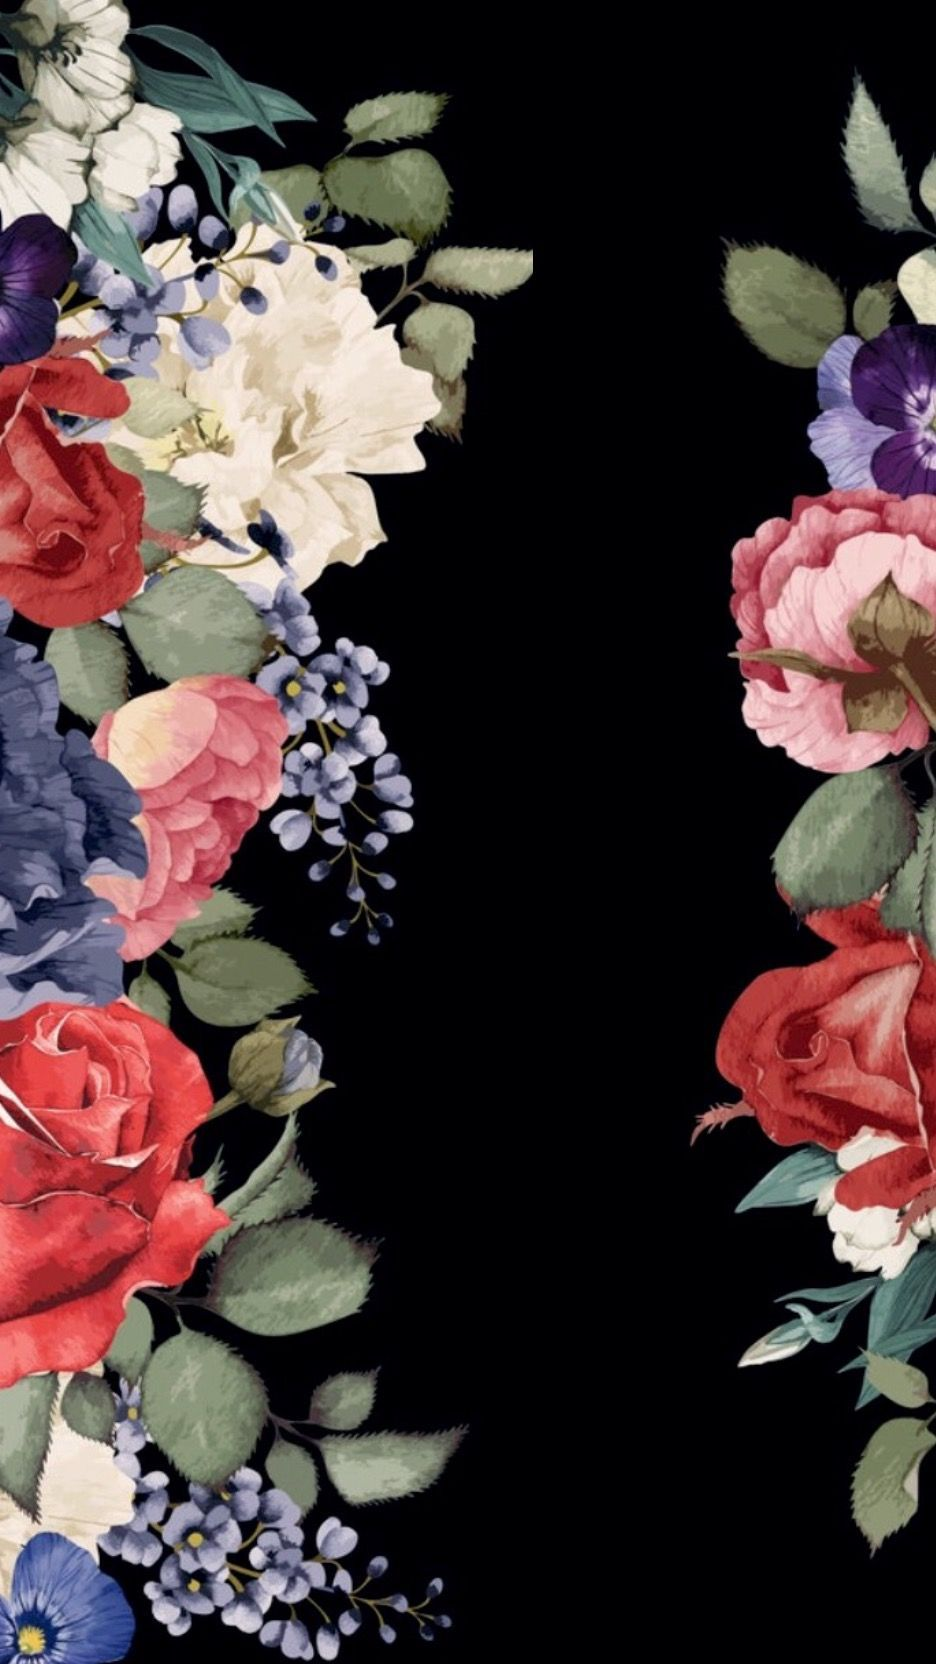 Beautiful Flower Black Background For Iphone Wallpaper Home Or Lock Sc Amazing Pretty Wal Christmas Aesthetic Vintage Cartoon Christmas Wallpaper